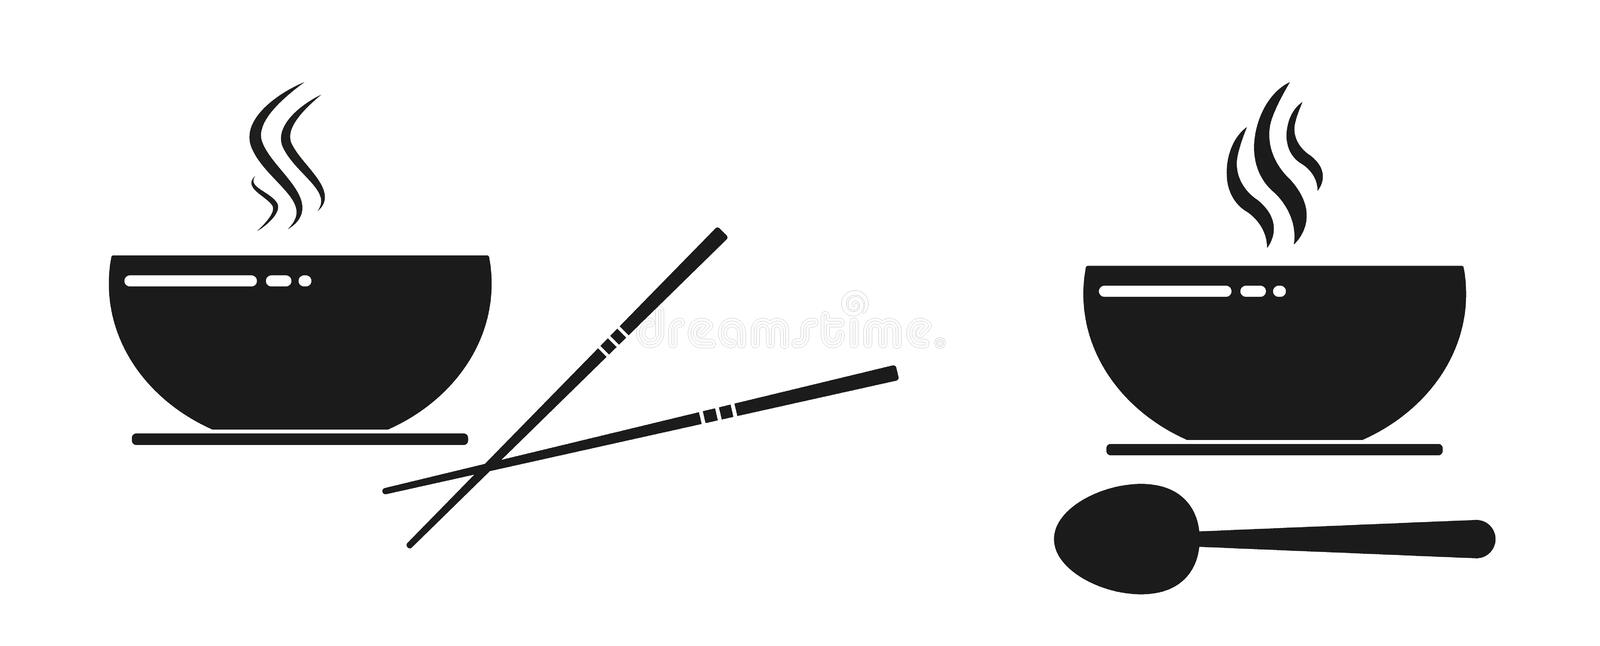 Black bowl with soup icon and spoon vector illustration